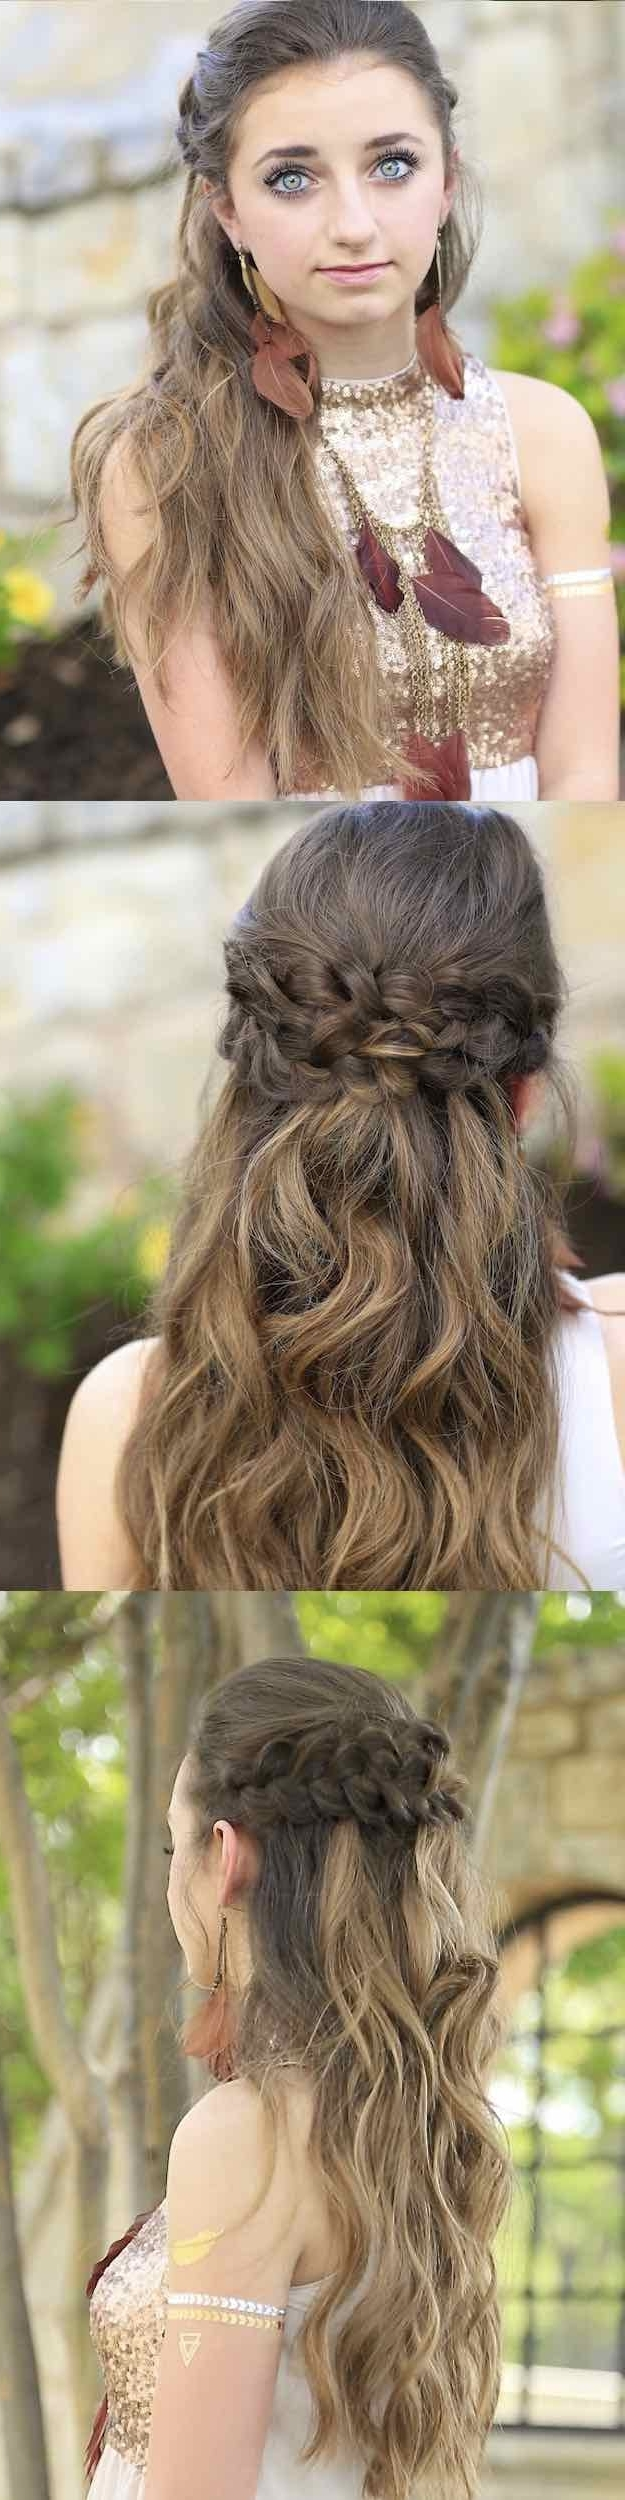 25 Easy Half Up Half Down Hairstyle Tutorials For Prom The 10+ Awesome Easy Hairstyles For Medium Length Hair For Prom